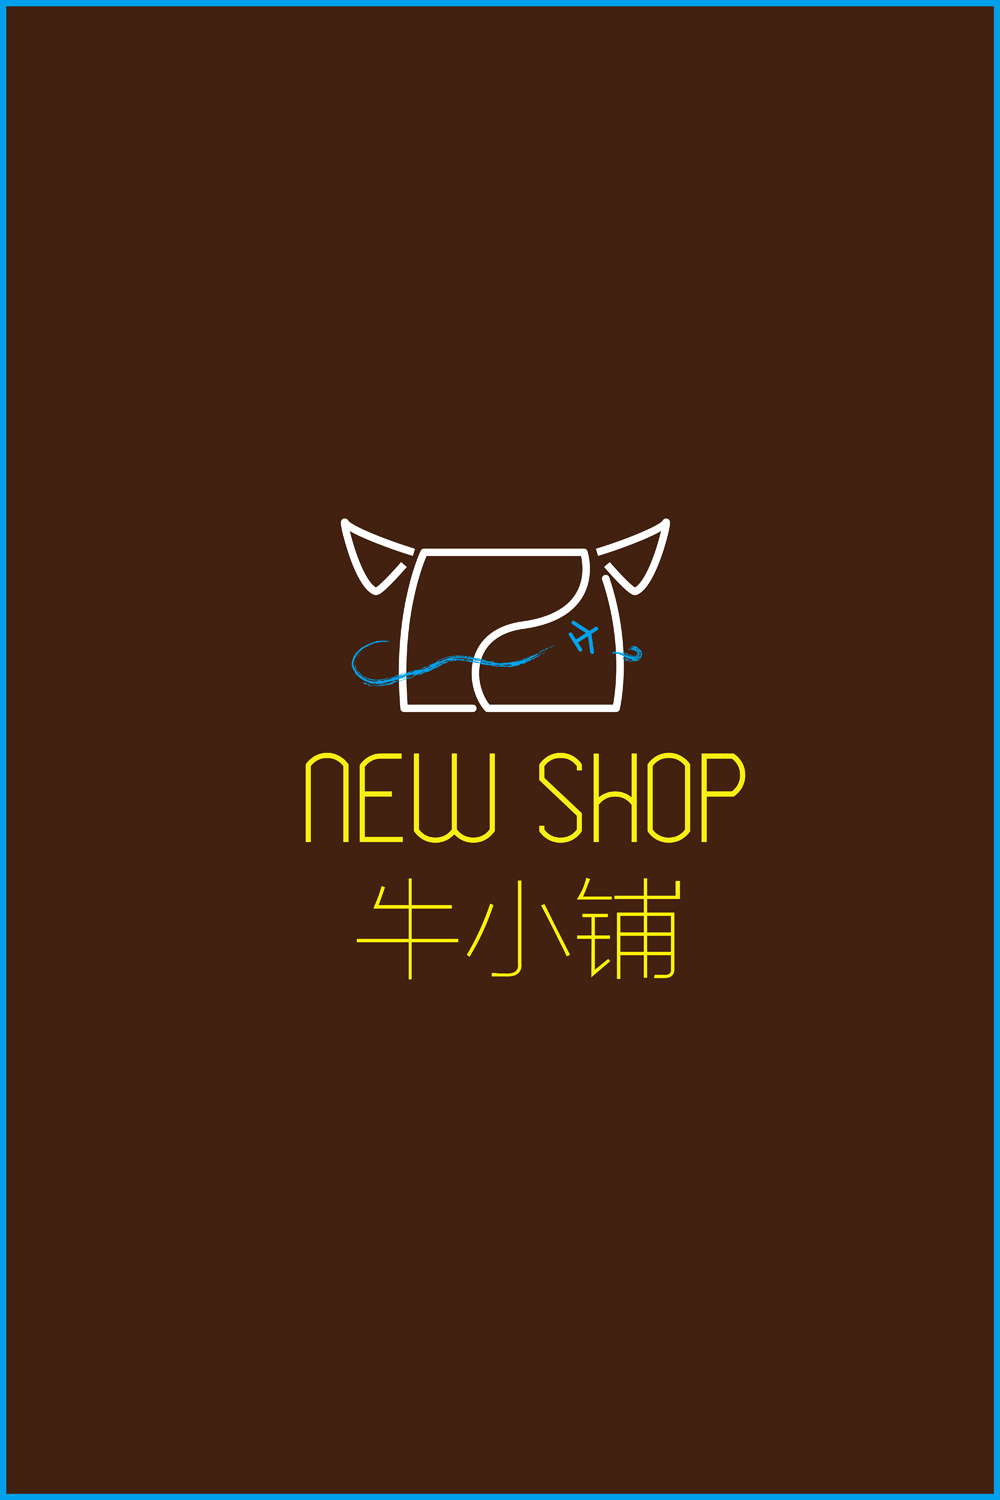 http://img.znds.com/uploads/new/160826/27-160R61422064A.png_new shop